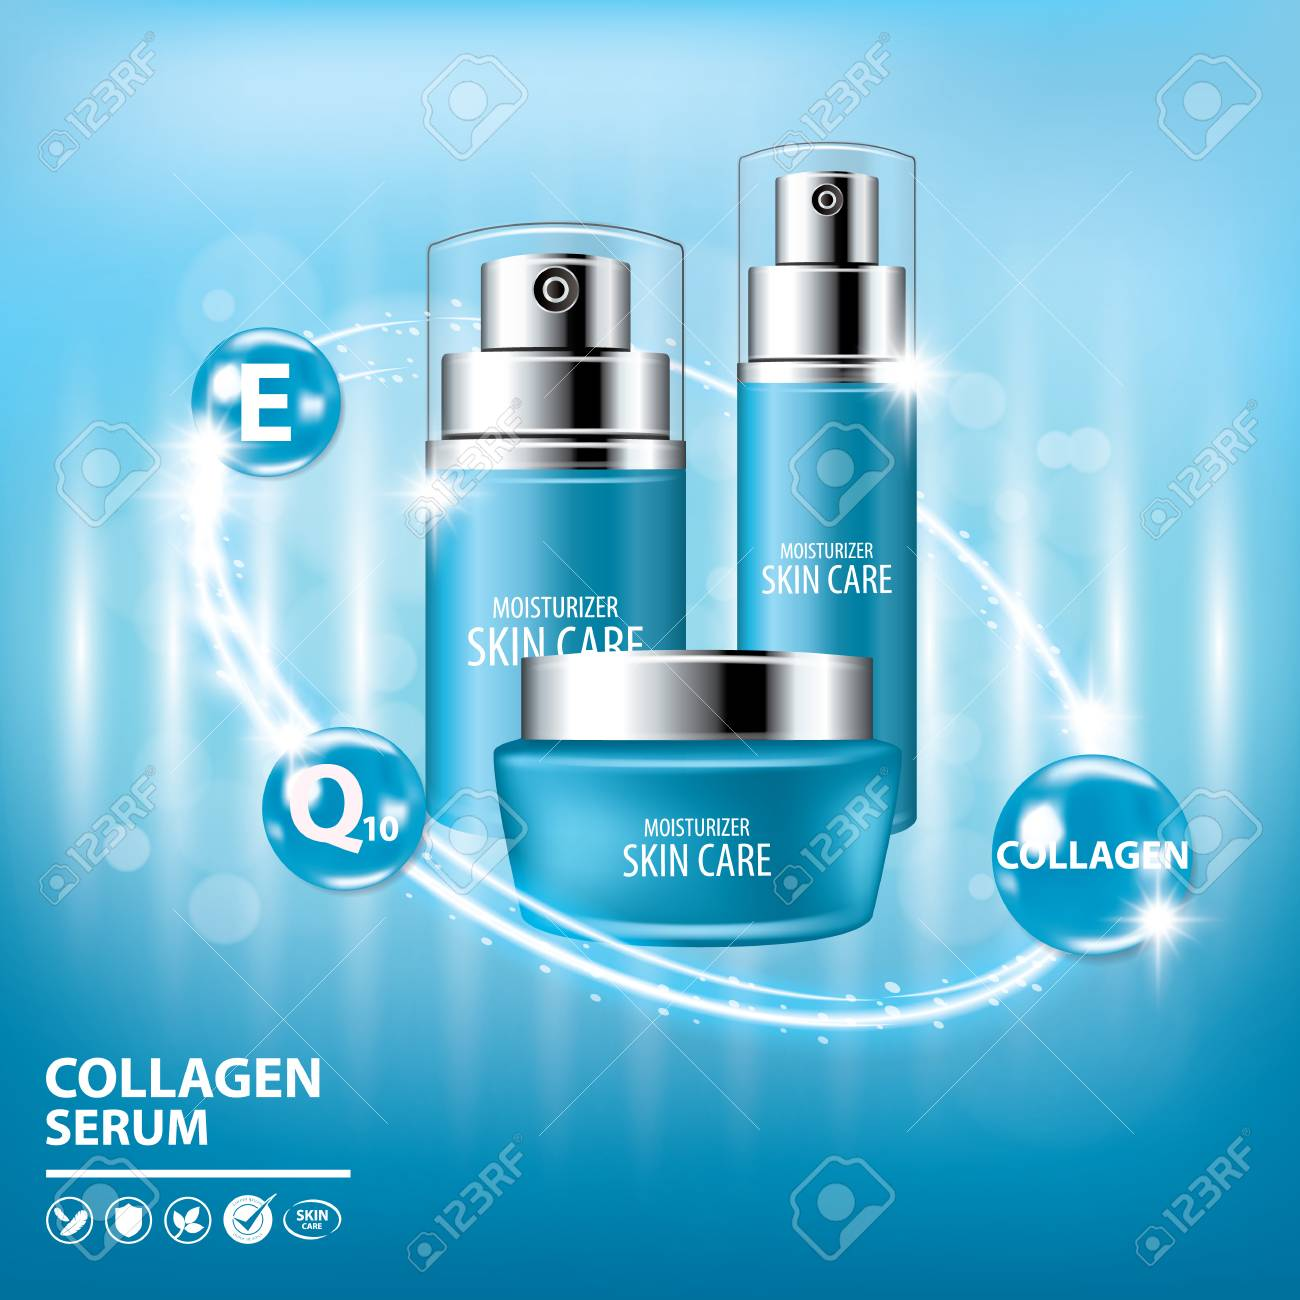 Blue Collagen Vitamin Skin Care Cream Serum Banner Background Royalty Free Cliparts Vectors And Stock Illustration Image 96621325